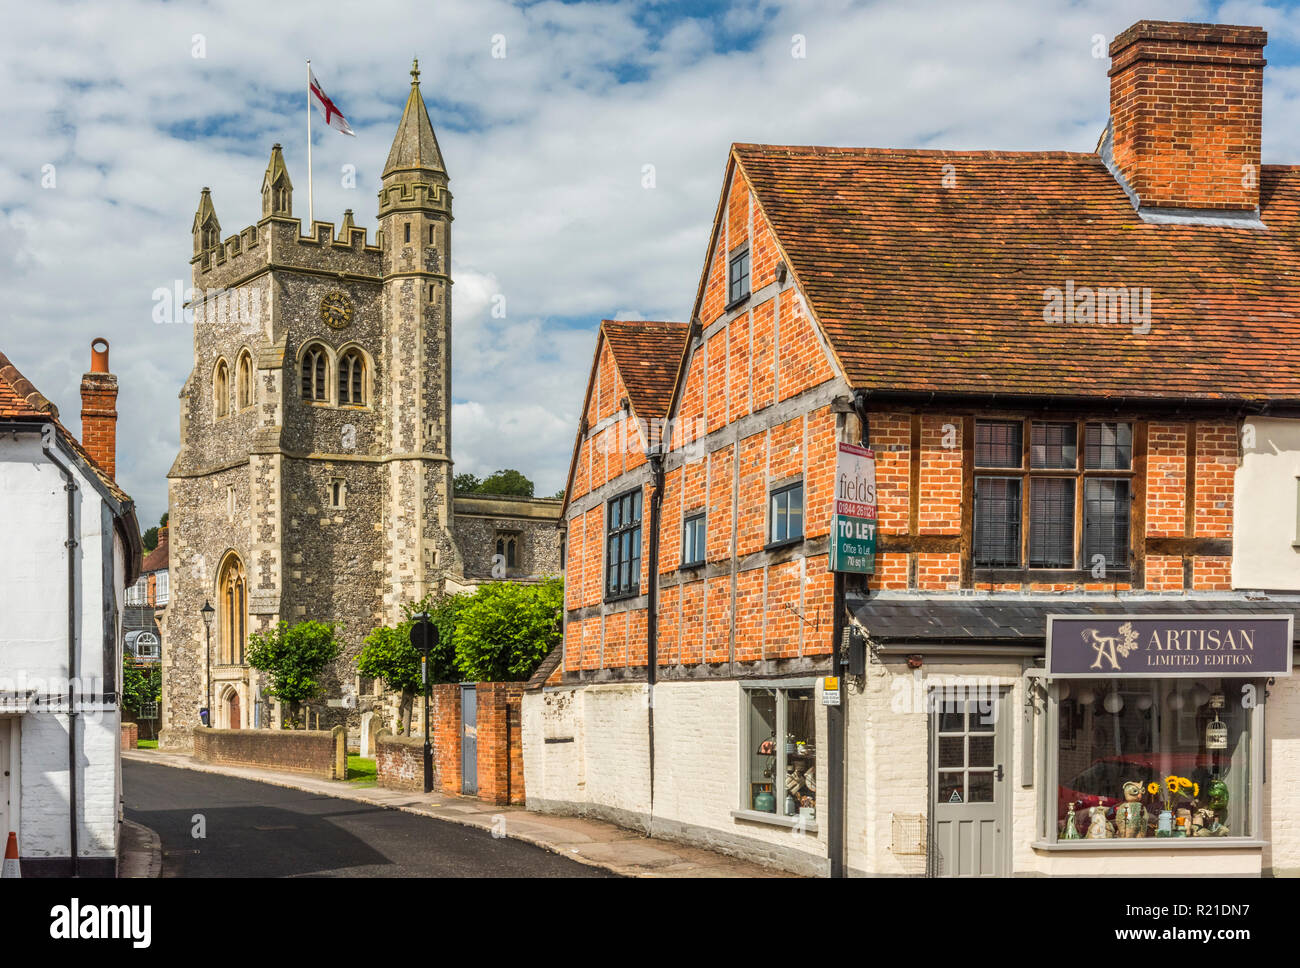 Timber-framed buildings in Old Amersham, Buckinghamshire, The Chilterns, England - Stock Image